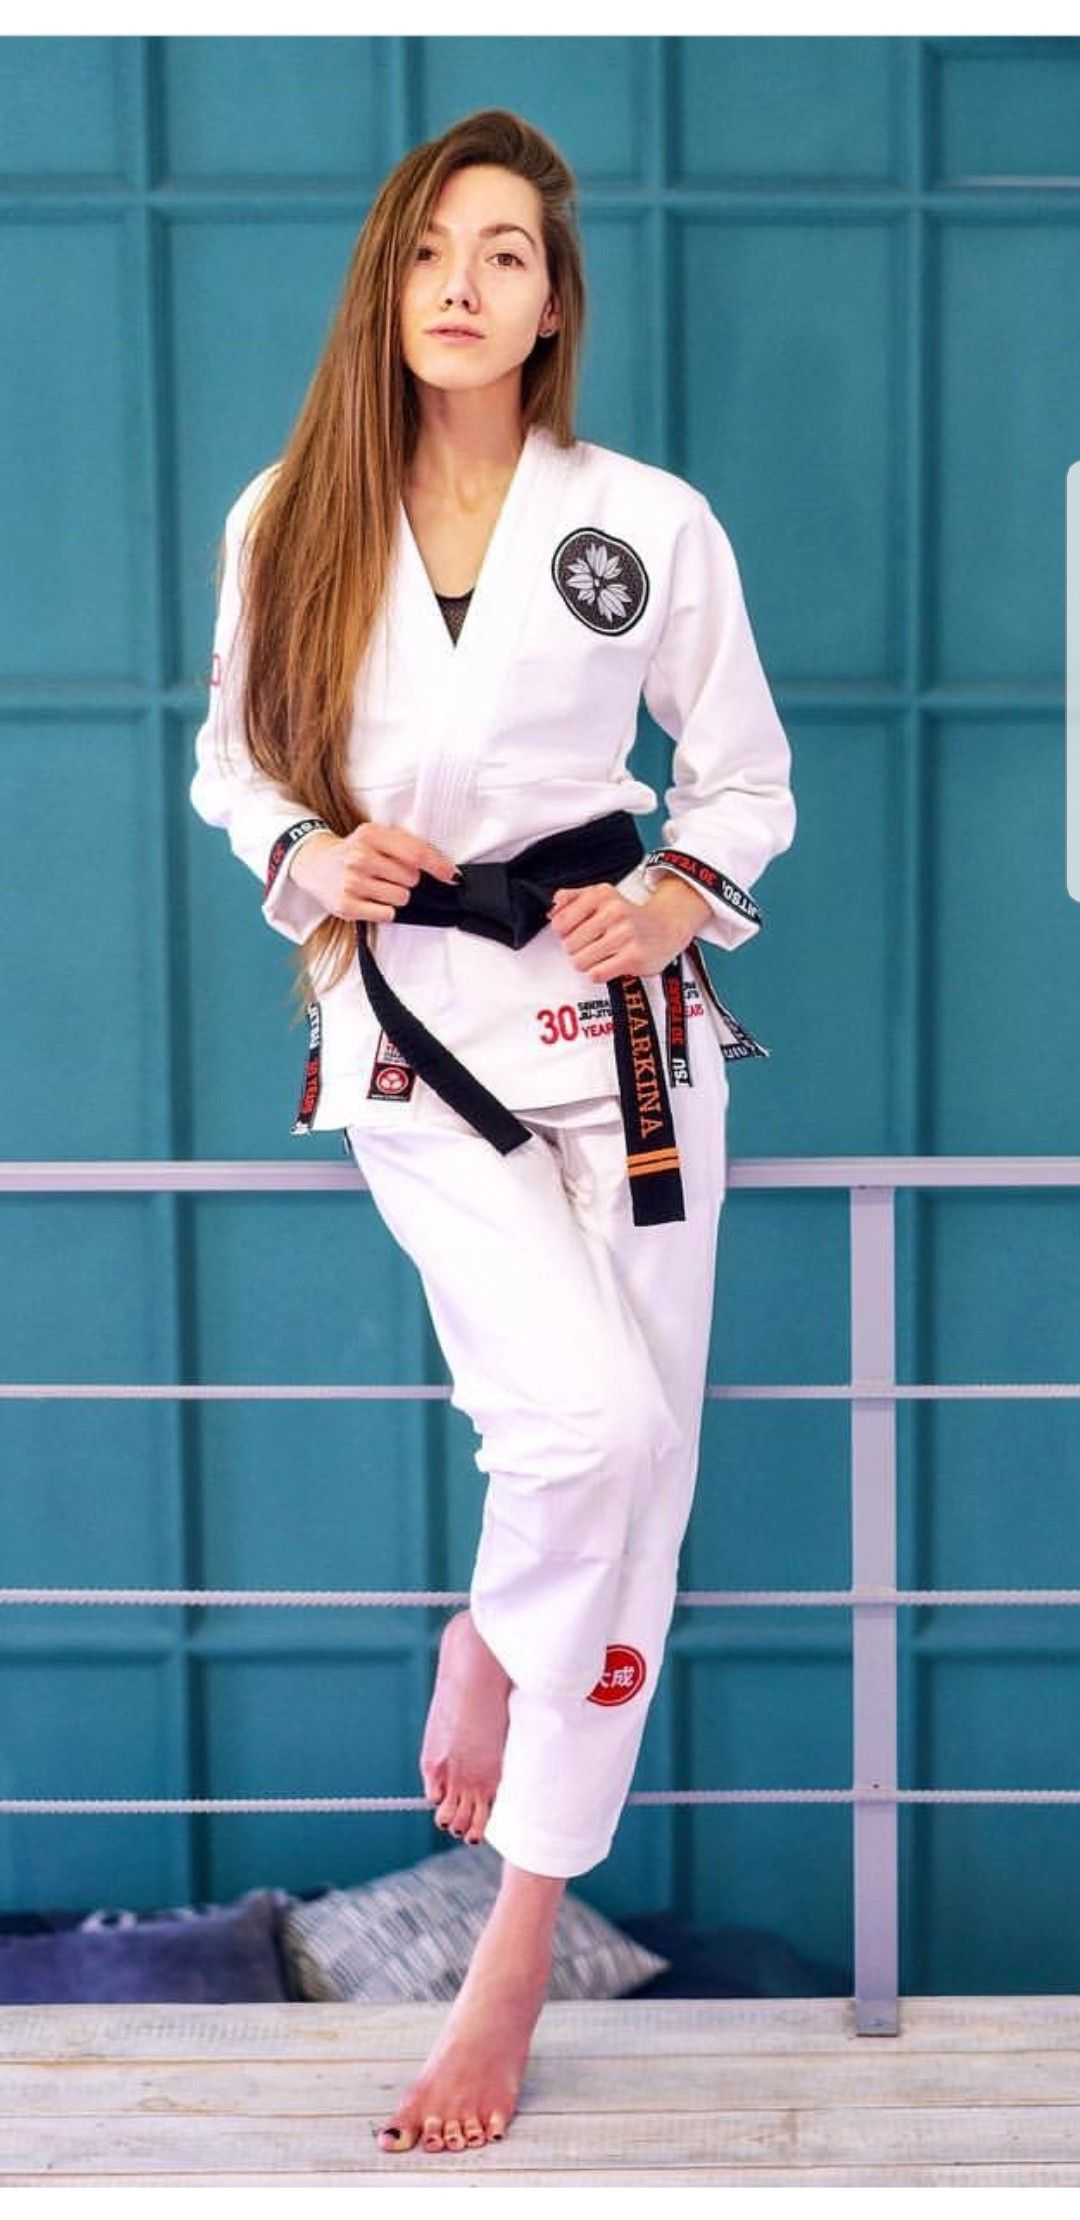 Pin By Tough Girls On Girls And Martial Arts Martial Arts Women Women Karate Martial Arts Girl